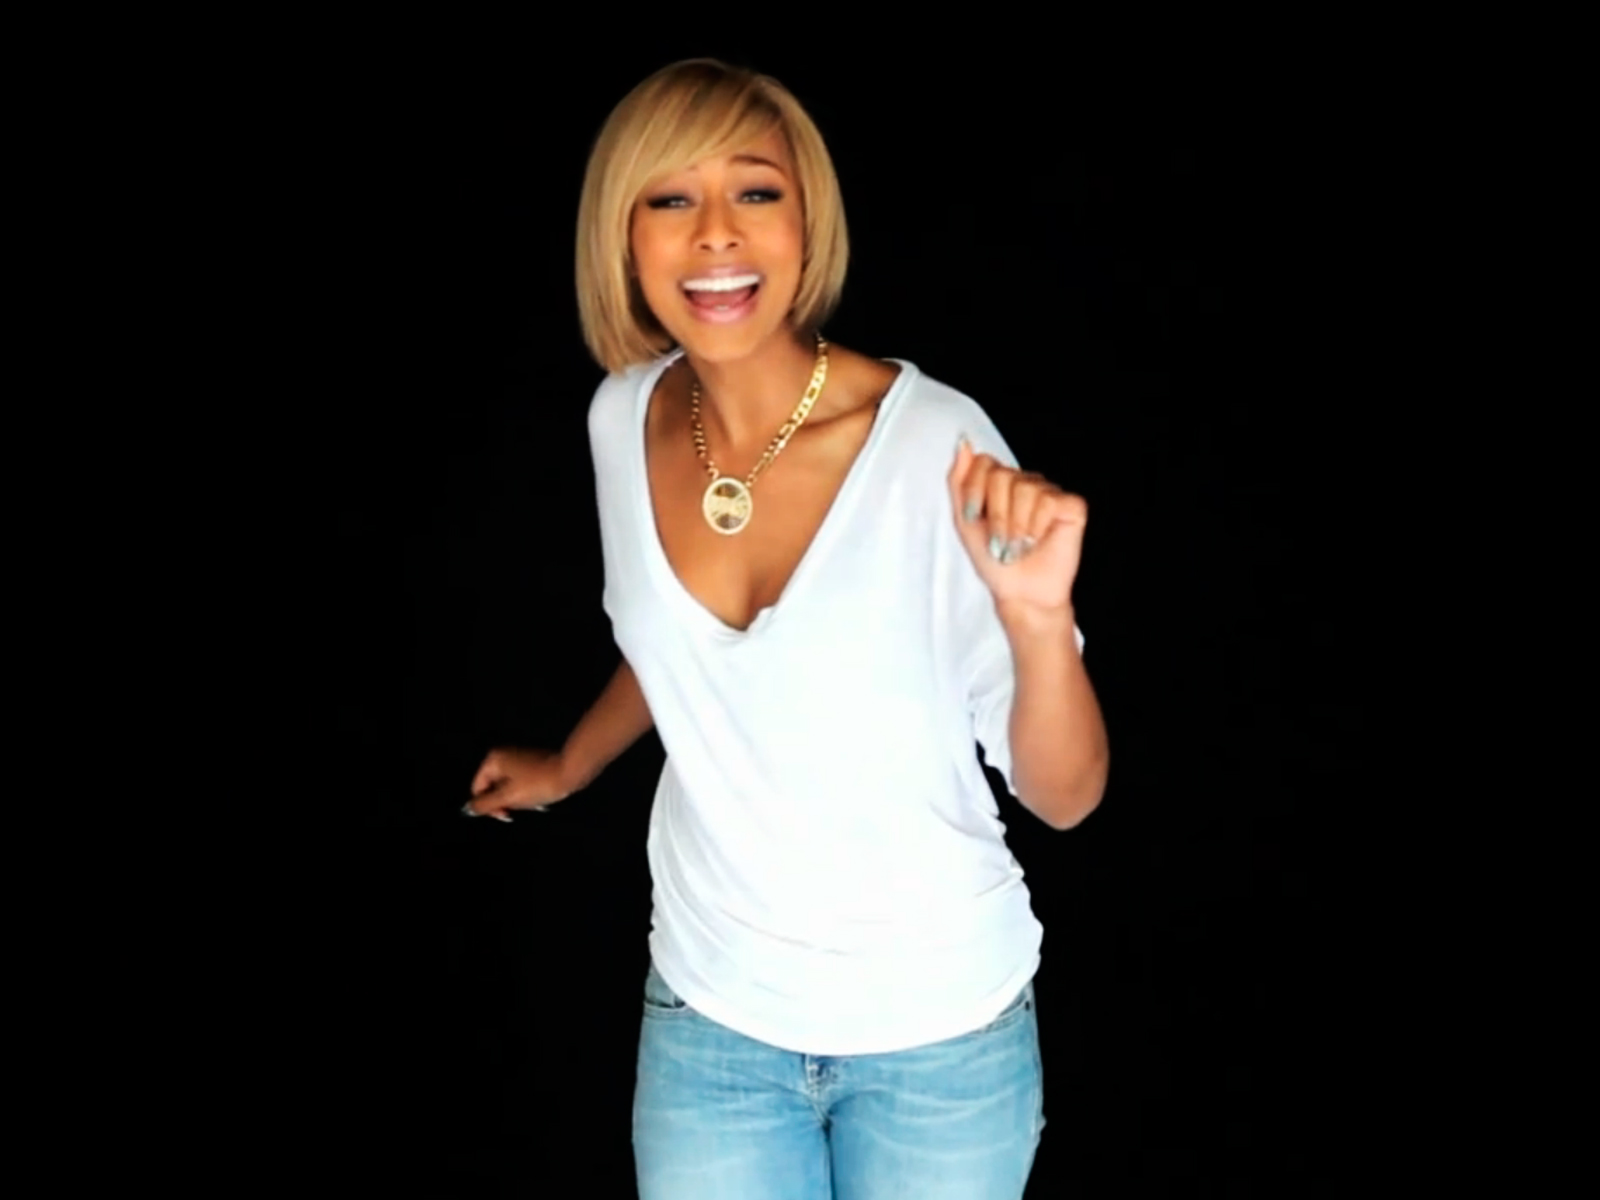 keri hilson youtube music videos by keri hilson